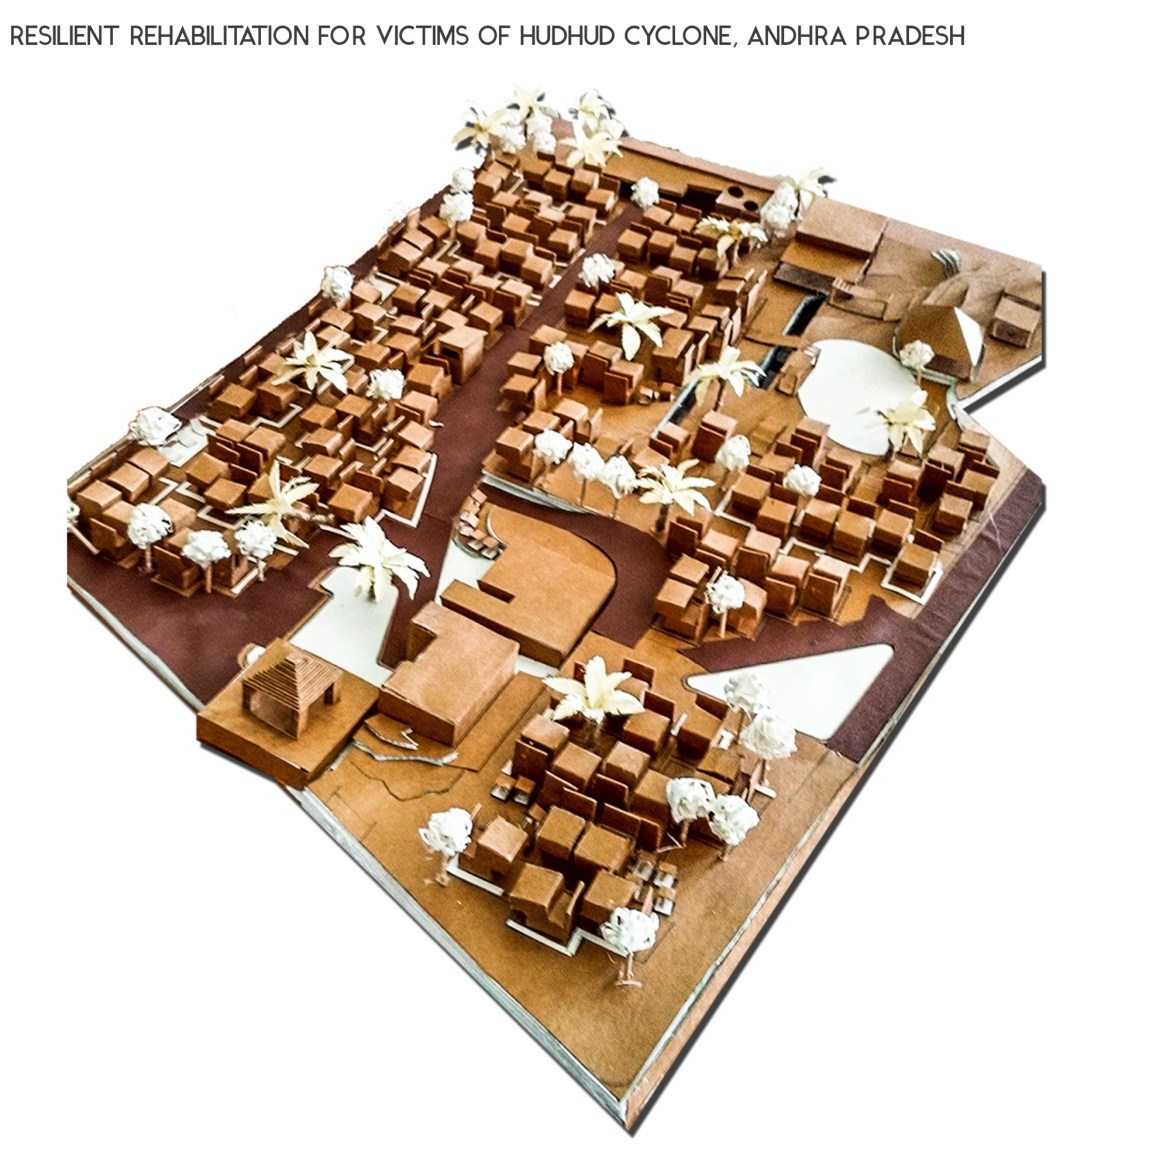 B.Arch Thesis: RESILIENT REHABILITATION FOR VICTIMS OF HUDHUD CYCLONE, ANDHRA PRADESH, by Sanand Telang 23